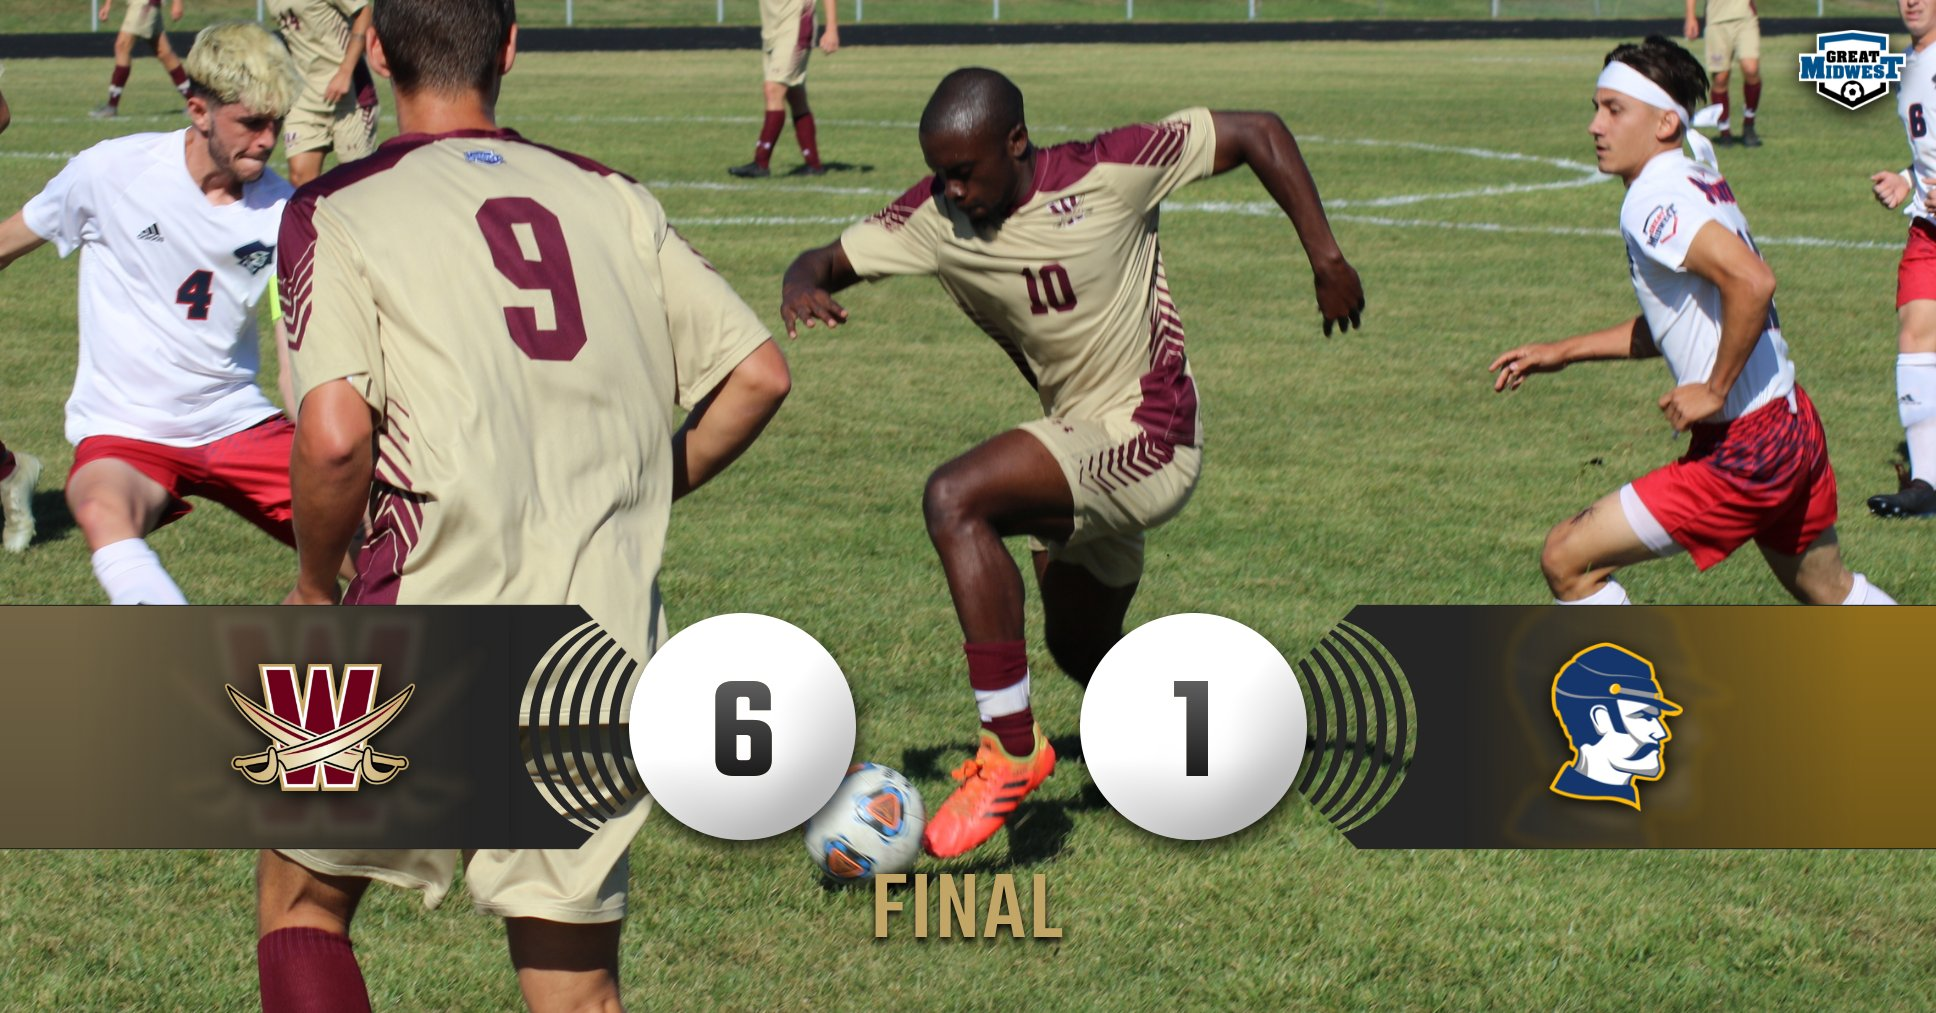 Cornwall's Hat Trick Leads Cavaliers, 6-1